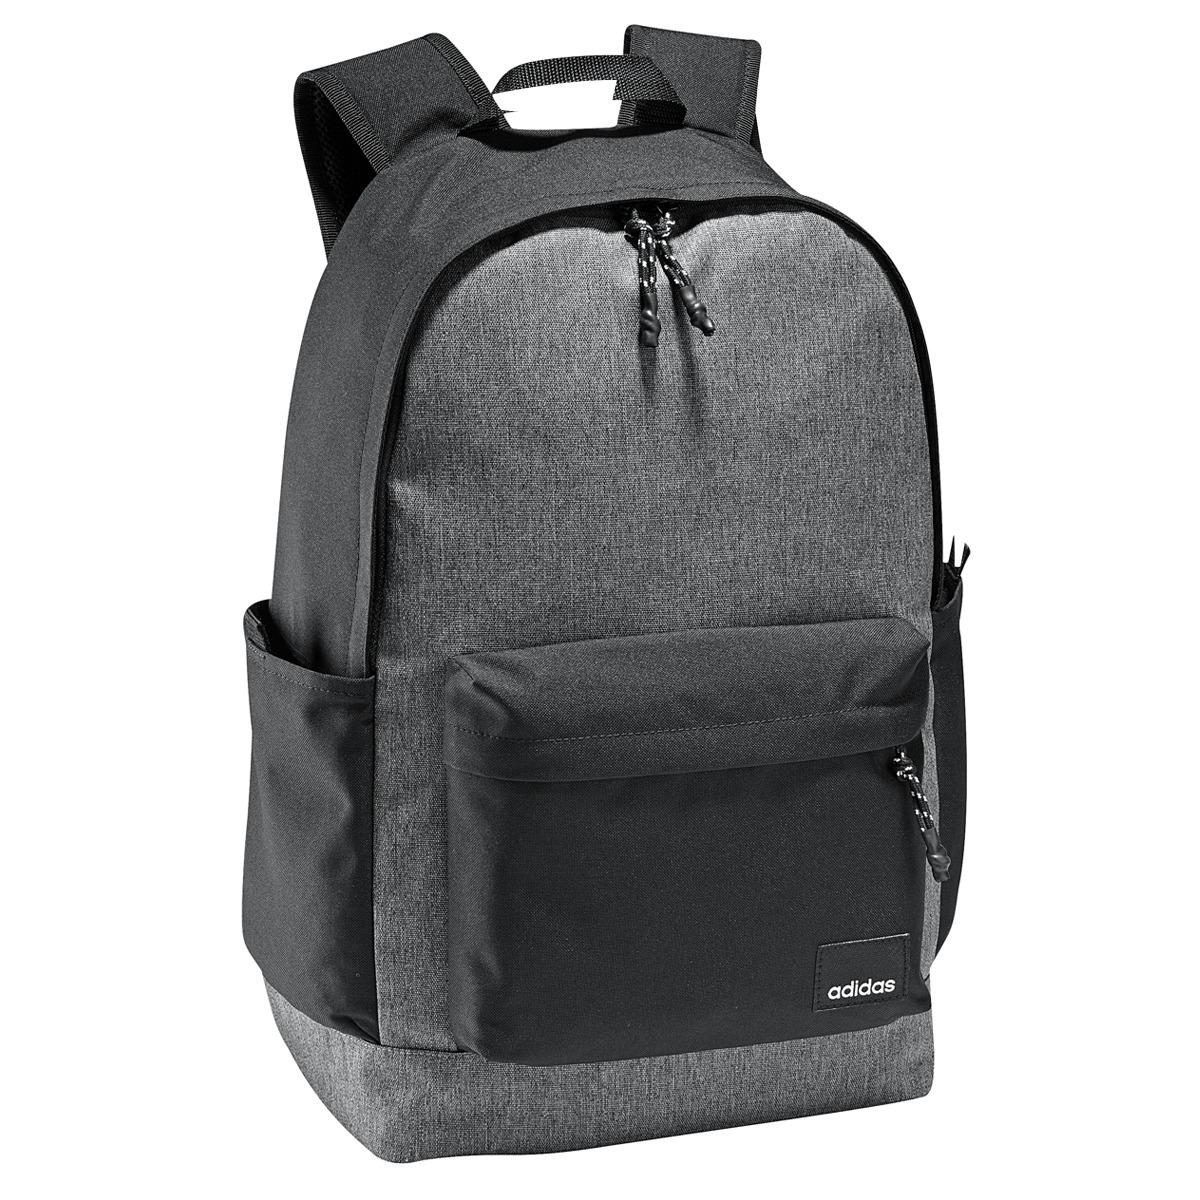 Adidas - Gray Xl Daily Backpack for Men - Lyst. View fullscreen f4854c873e506